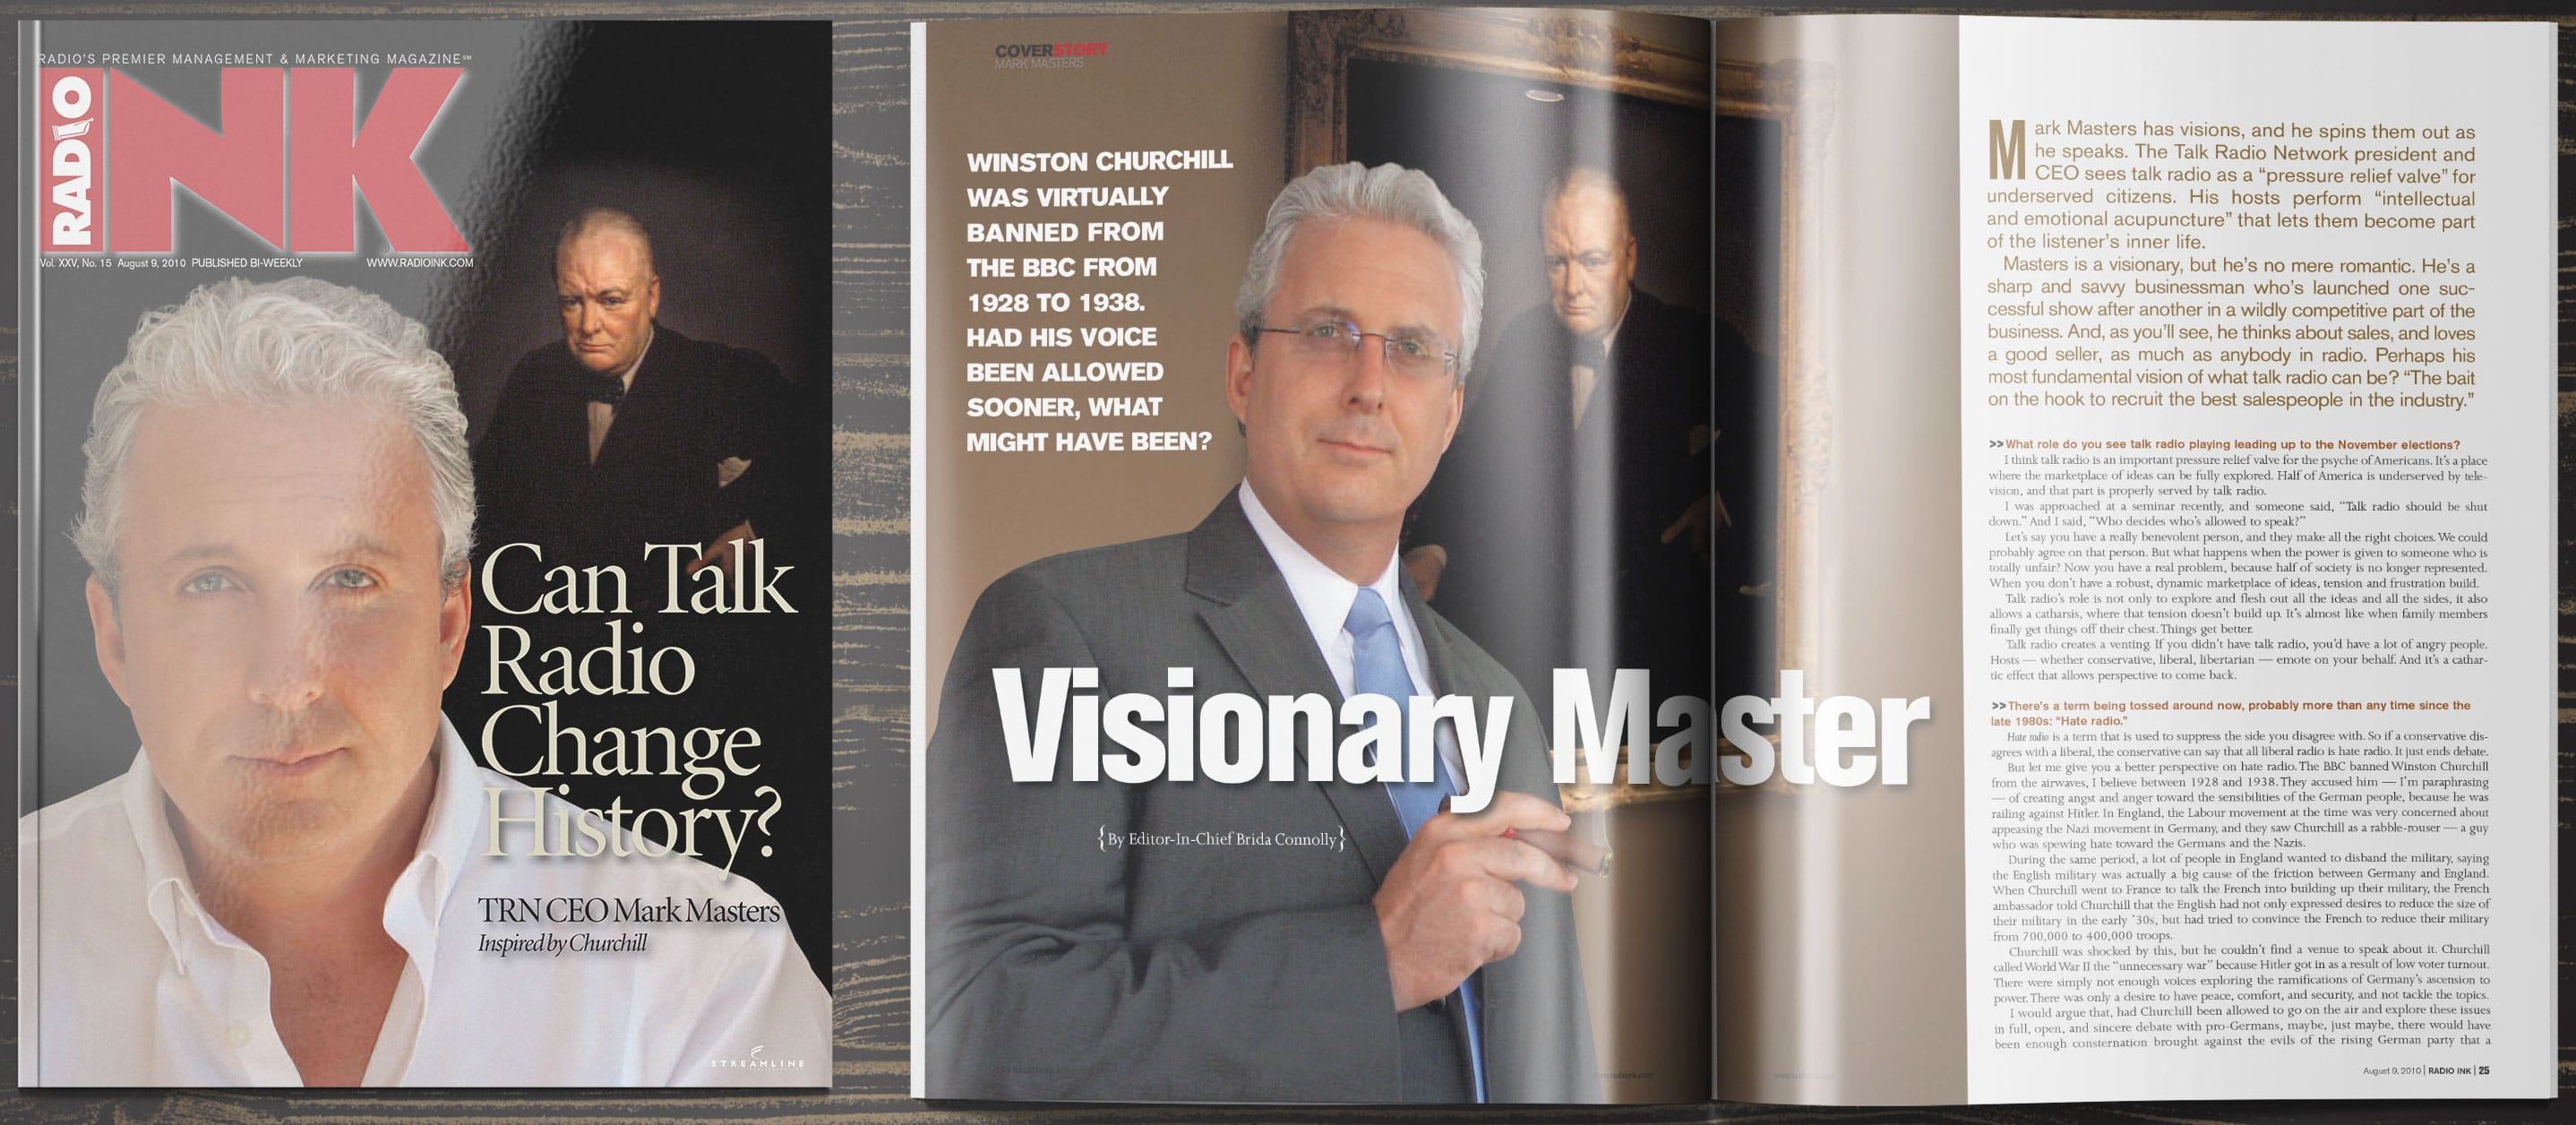 RadioInk spread showing Mark Masters interview